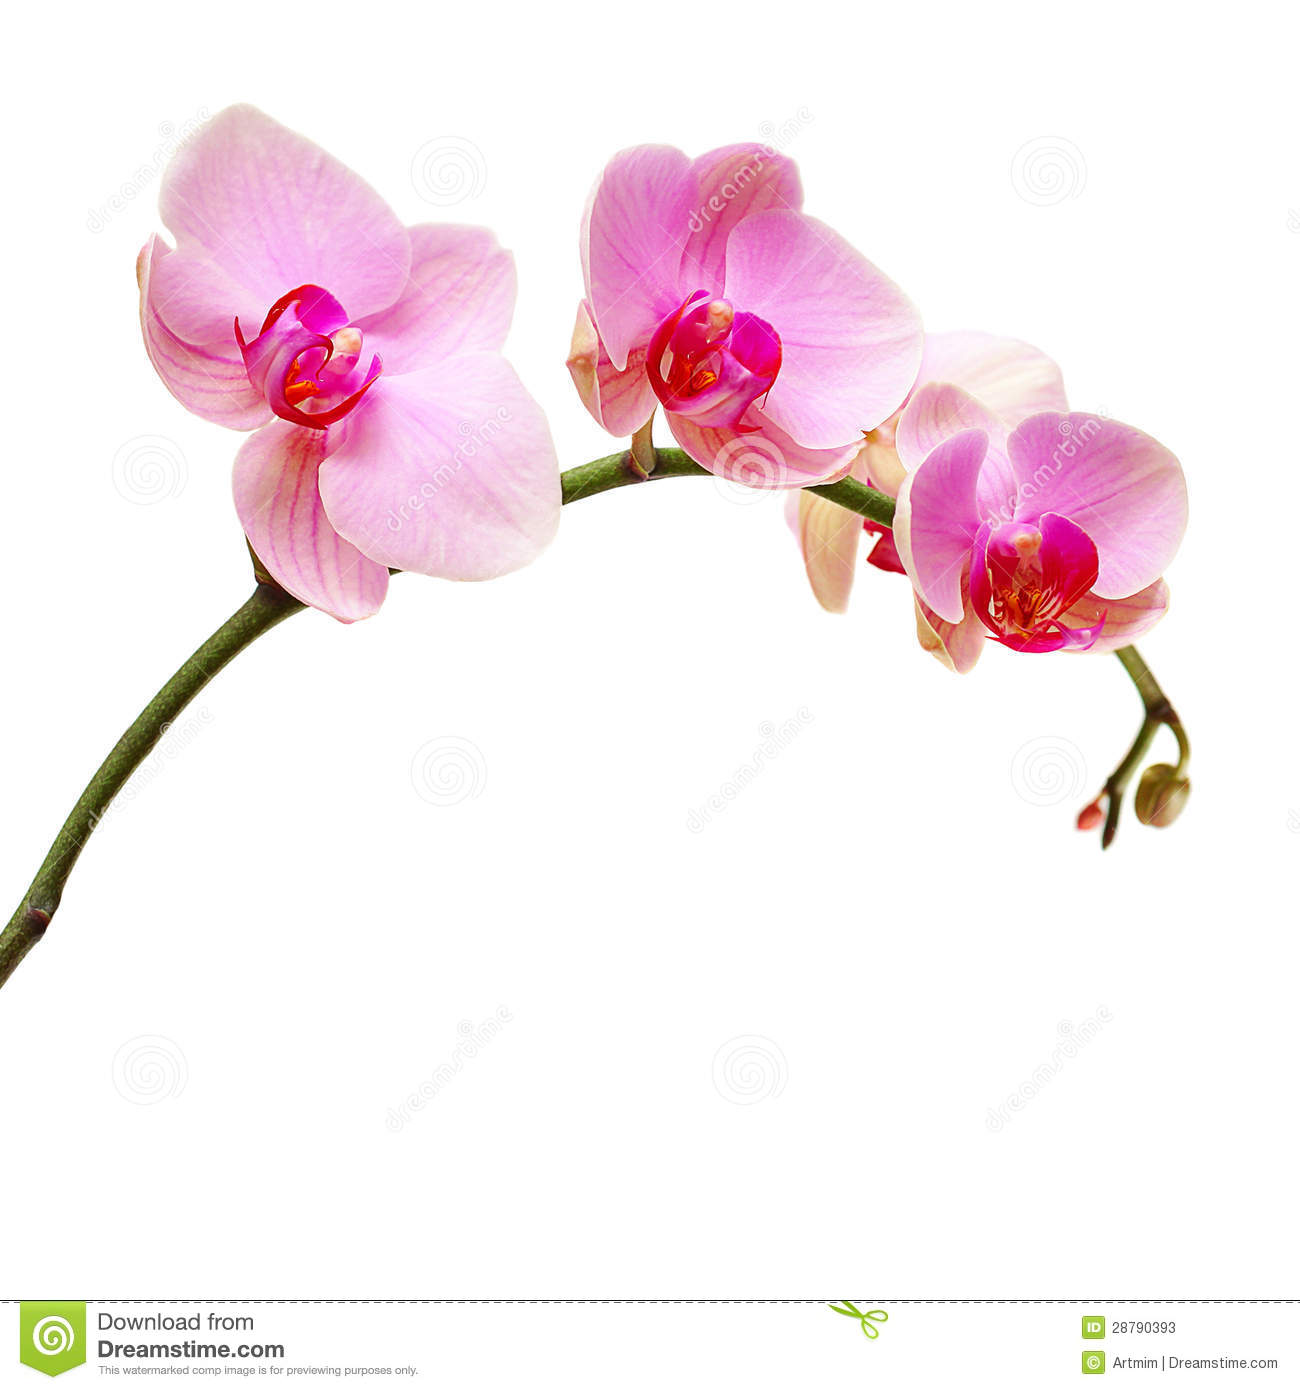 picture of map united states with Stock Photos Pink Orchid Flower Image28790393 on 969 as well Stock Photography Ferret Paws Print Image28759692 in addition World Map With Country Names And Capitals Maps Of Usa In India To Usa besides 818 Pescara  Italy likewise Bm.